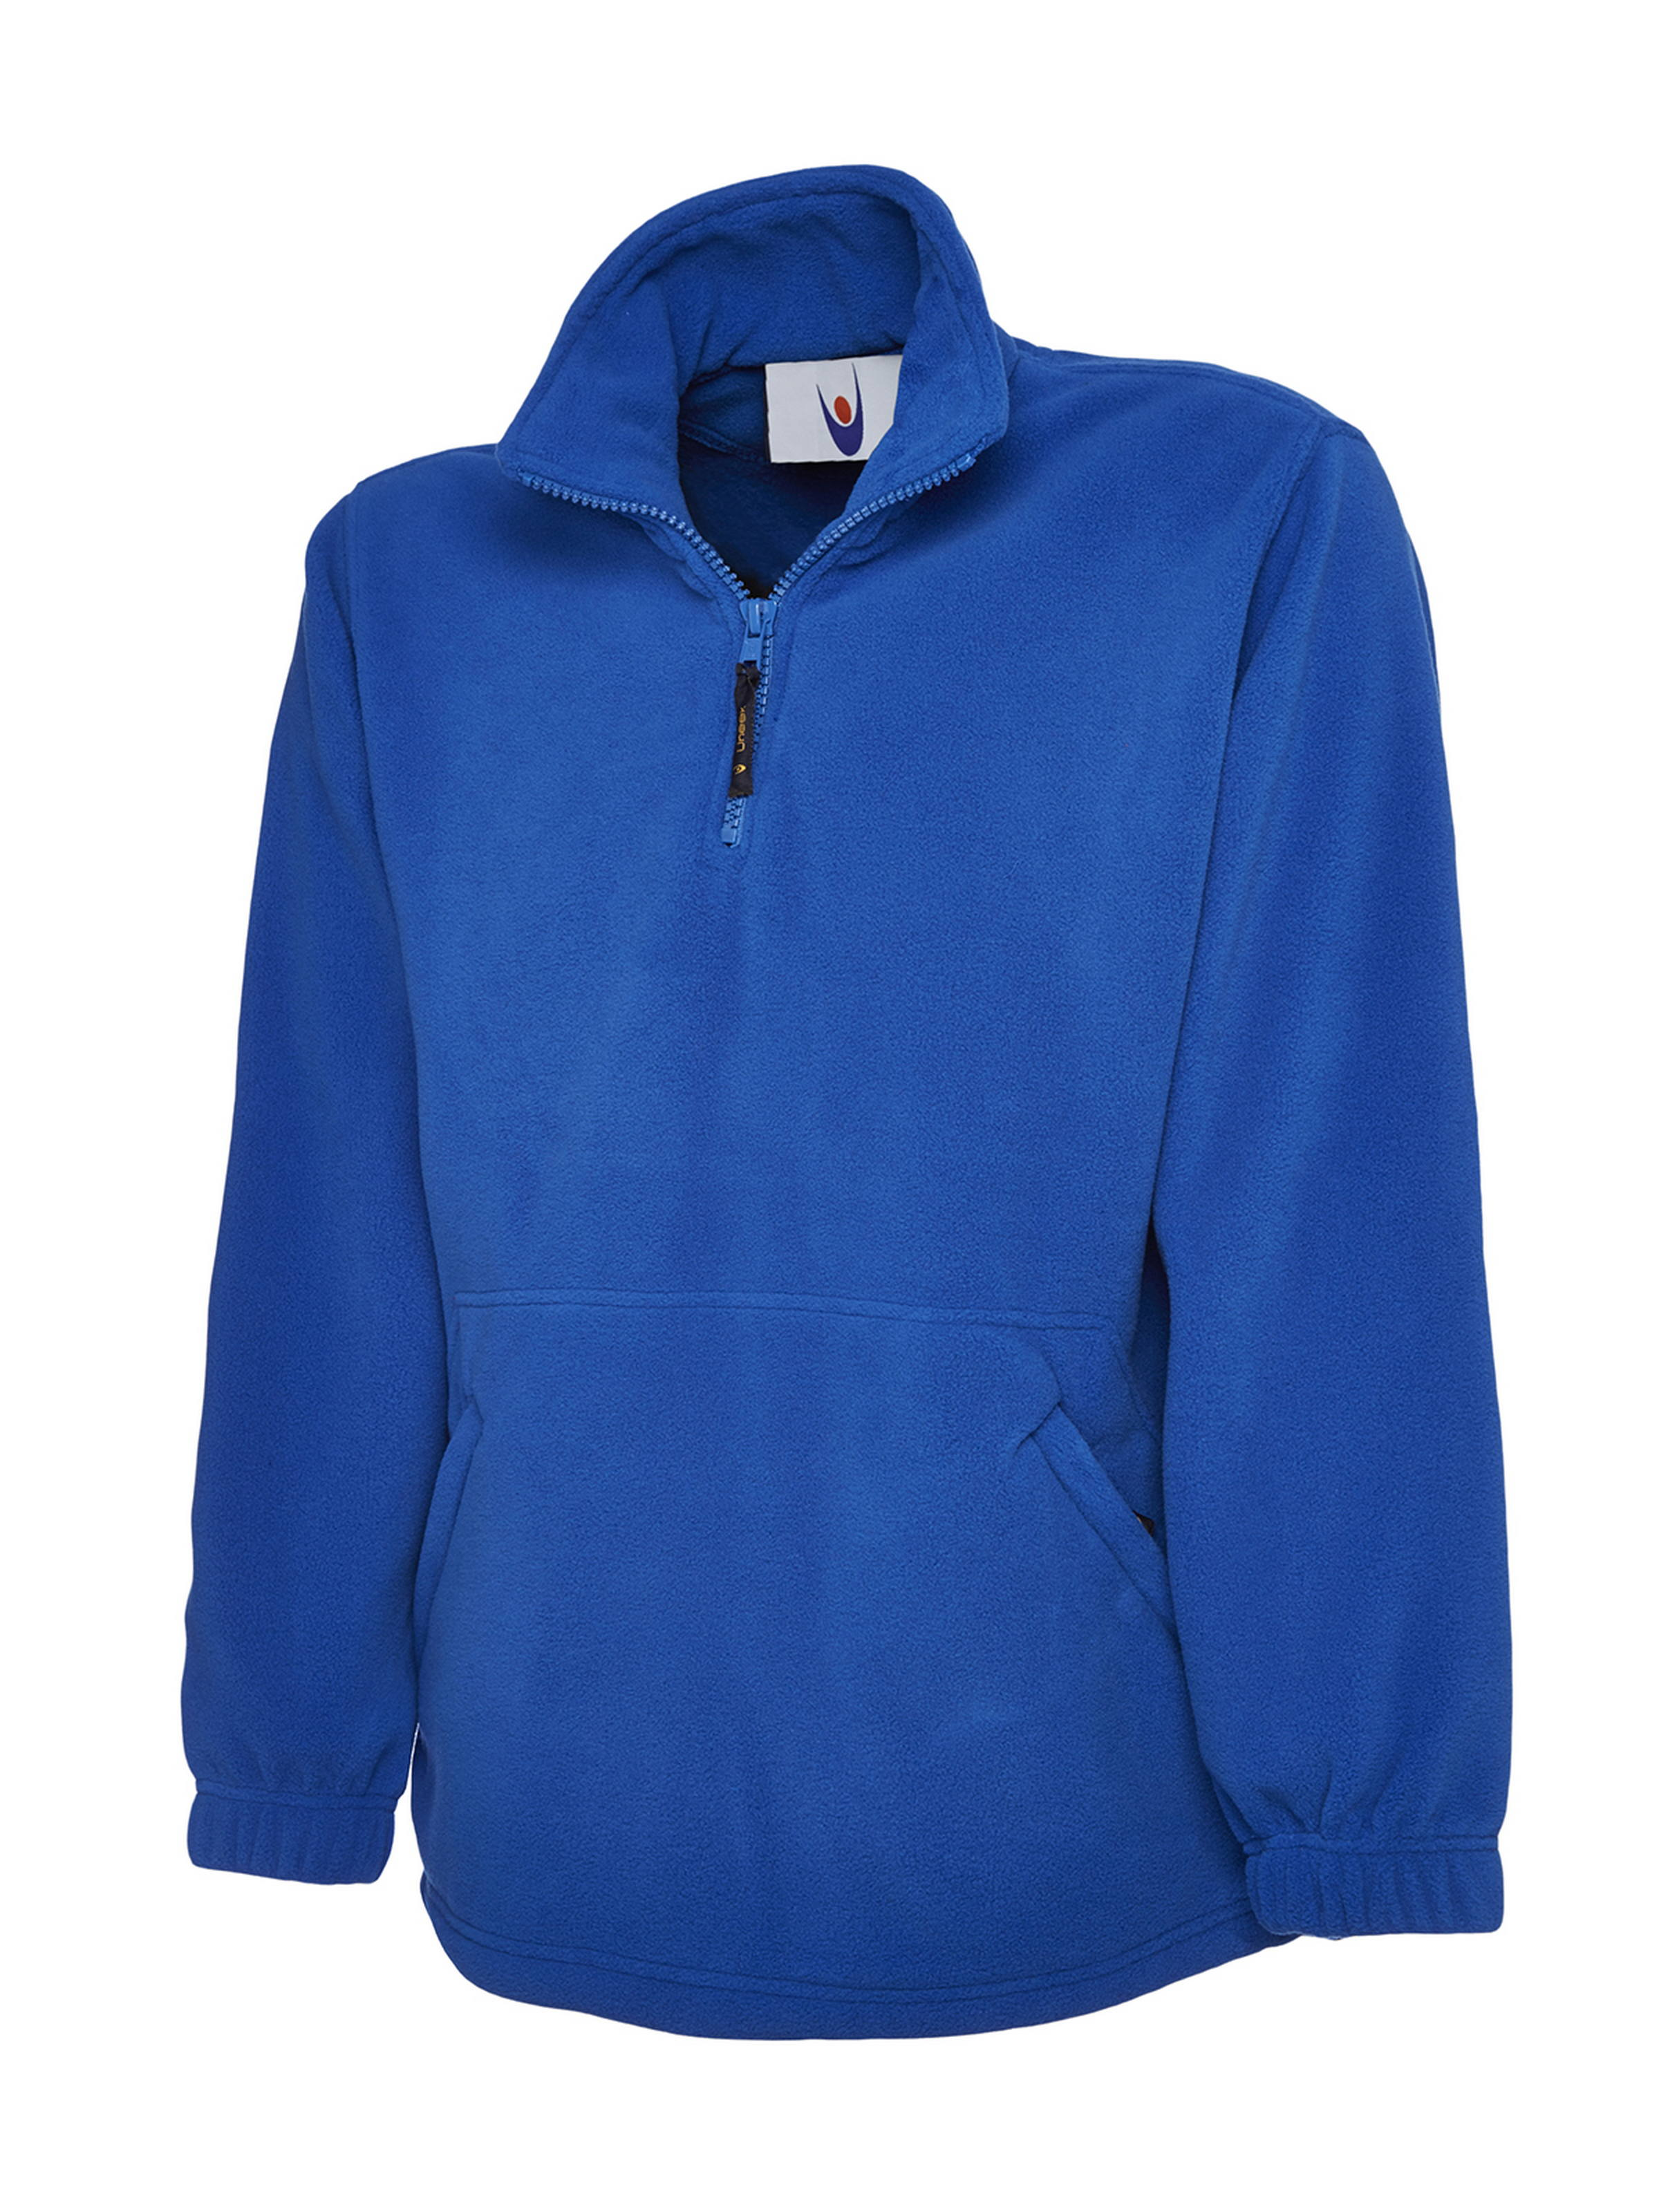 602 Premium 1/4 Zip Micro Fleece Jacket